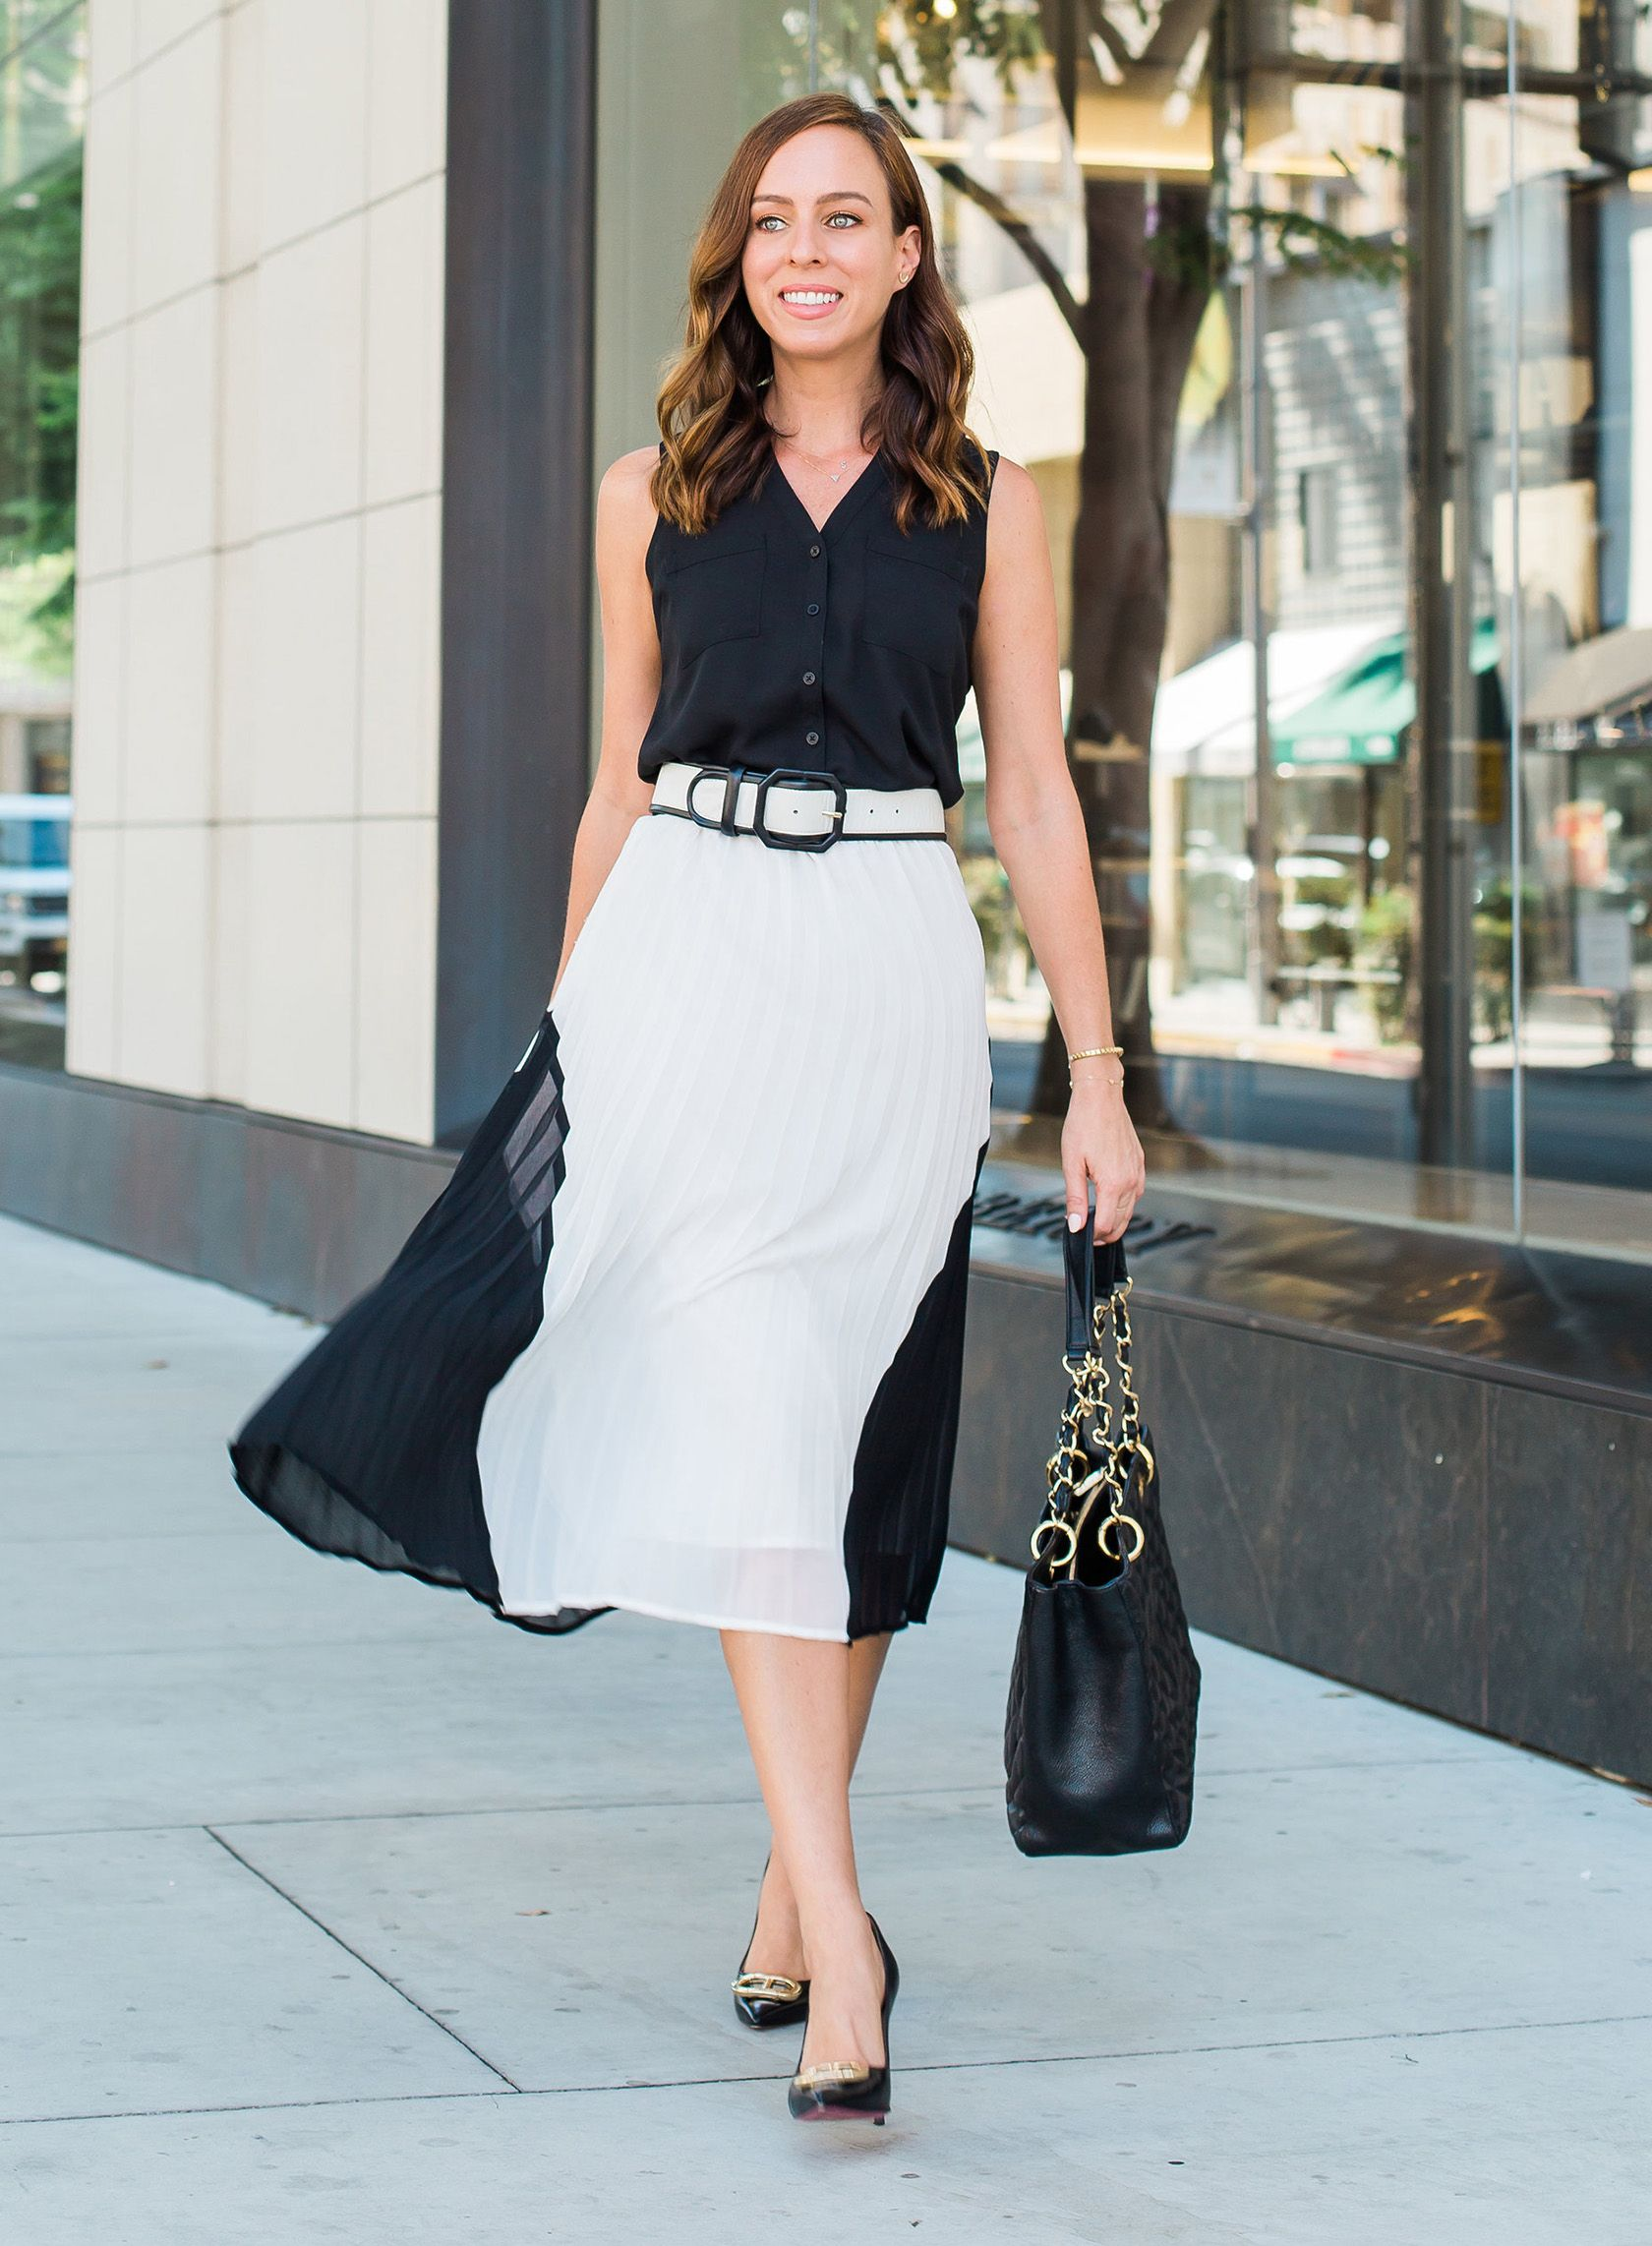 daaf9817e6c Sydne Style shows black and white outfit ideas inspired by meghan markle  pleated dress  blackandwhite  skirts  meghanmarkle  classic